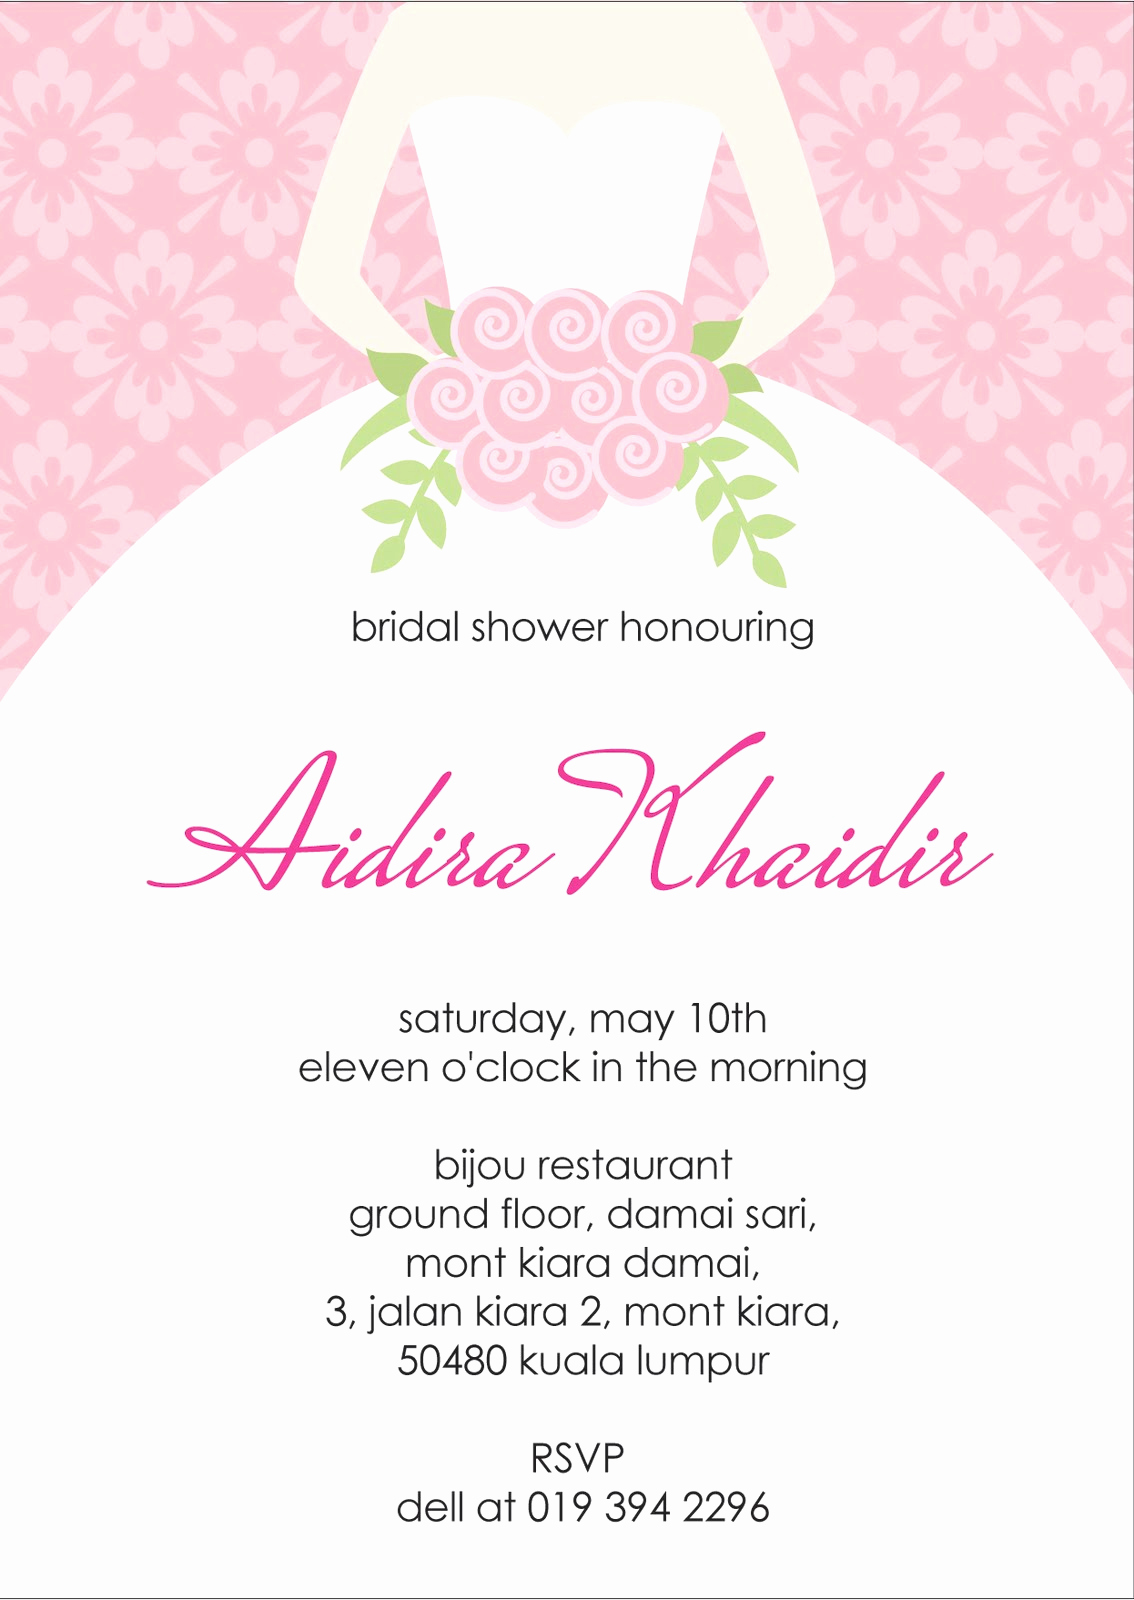 Bridal Shower Invitation Template Fresh Your One Stop Wedding Centre Ts Deco Favors and